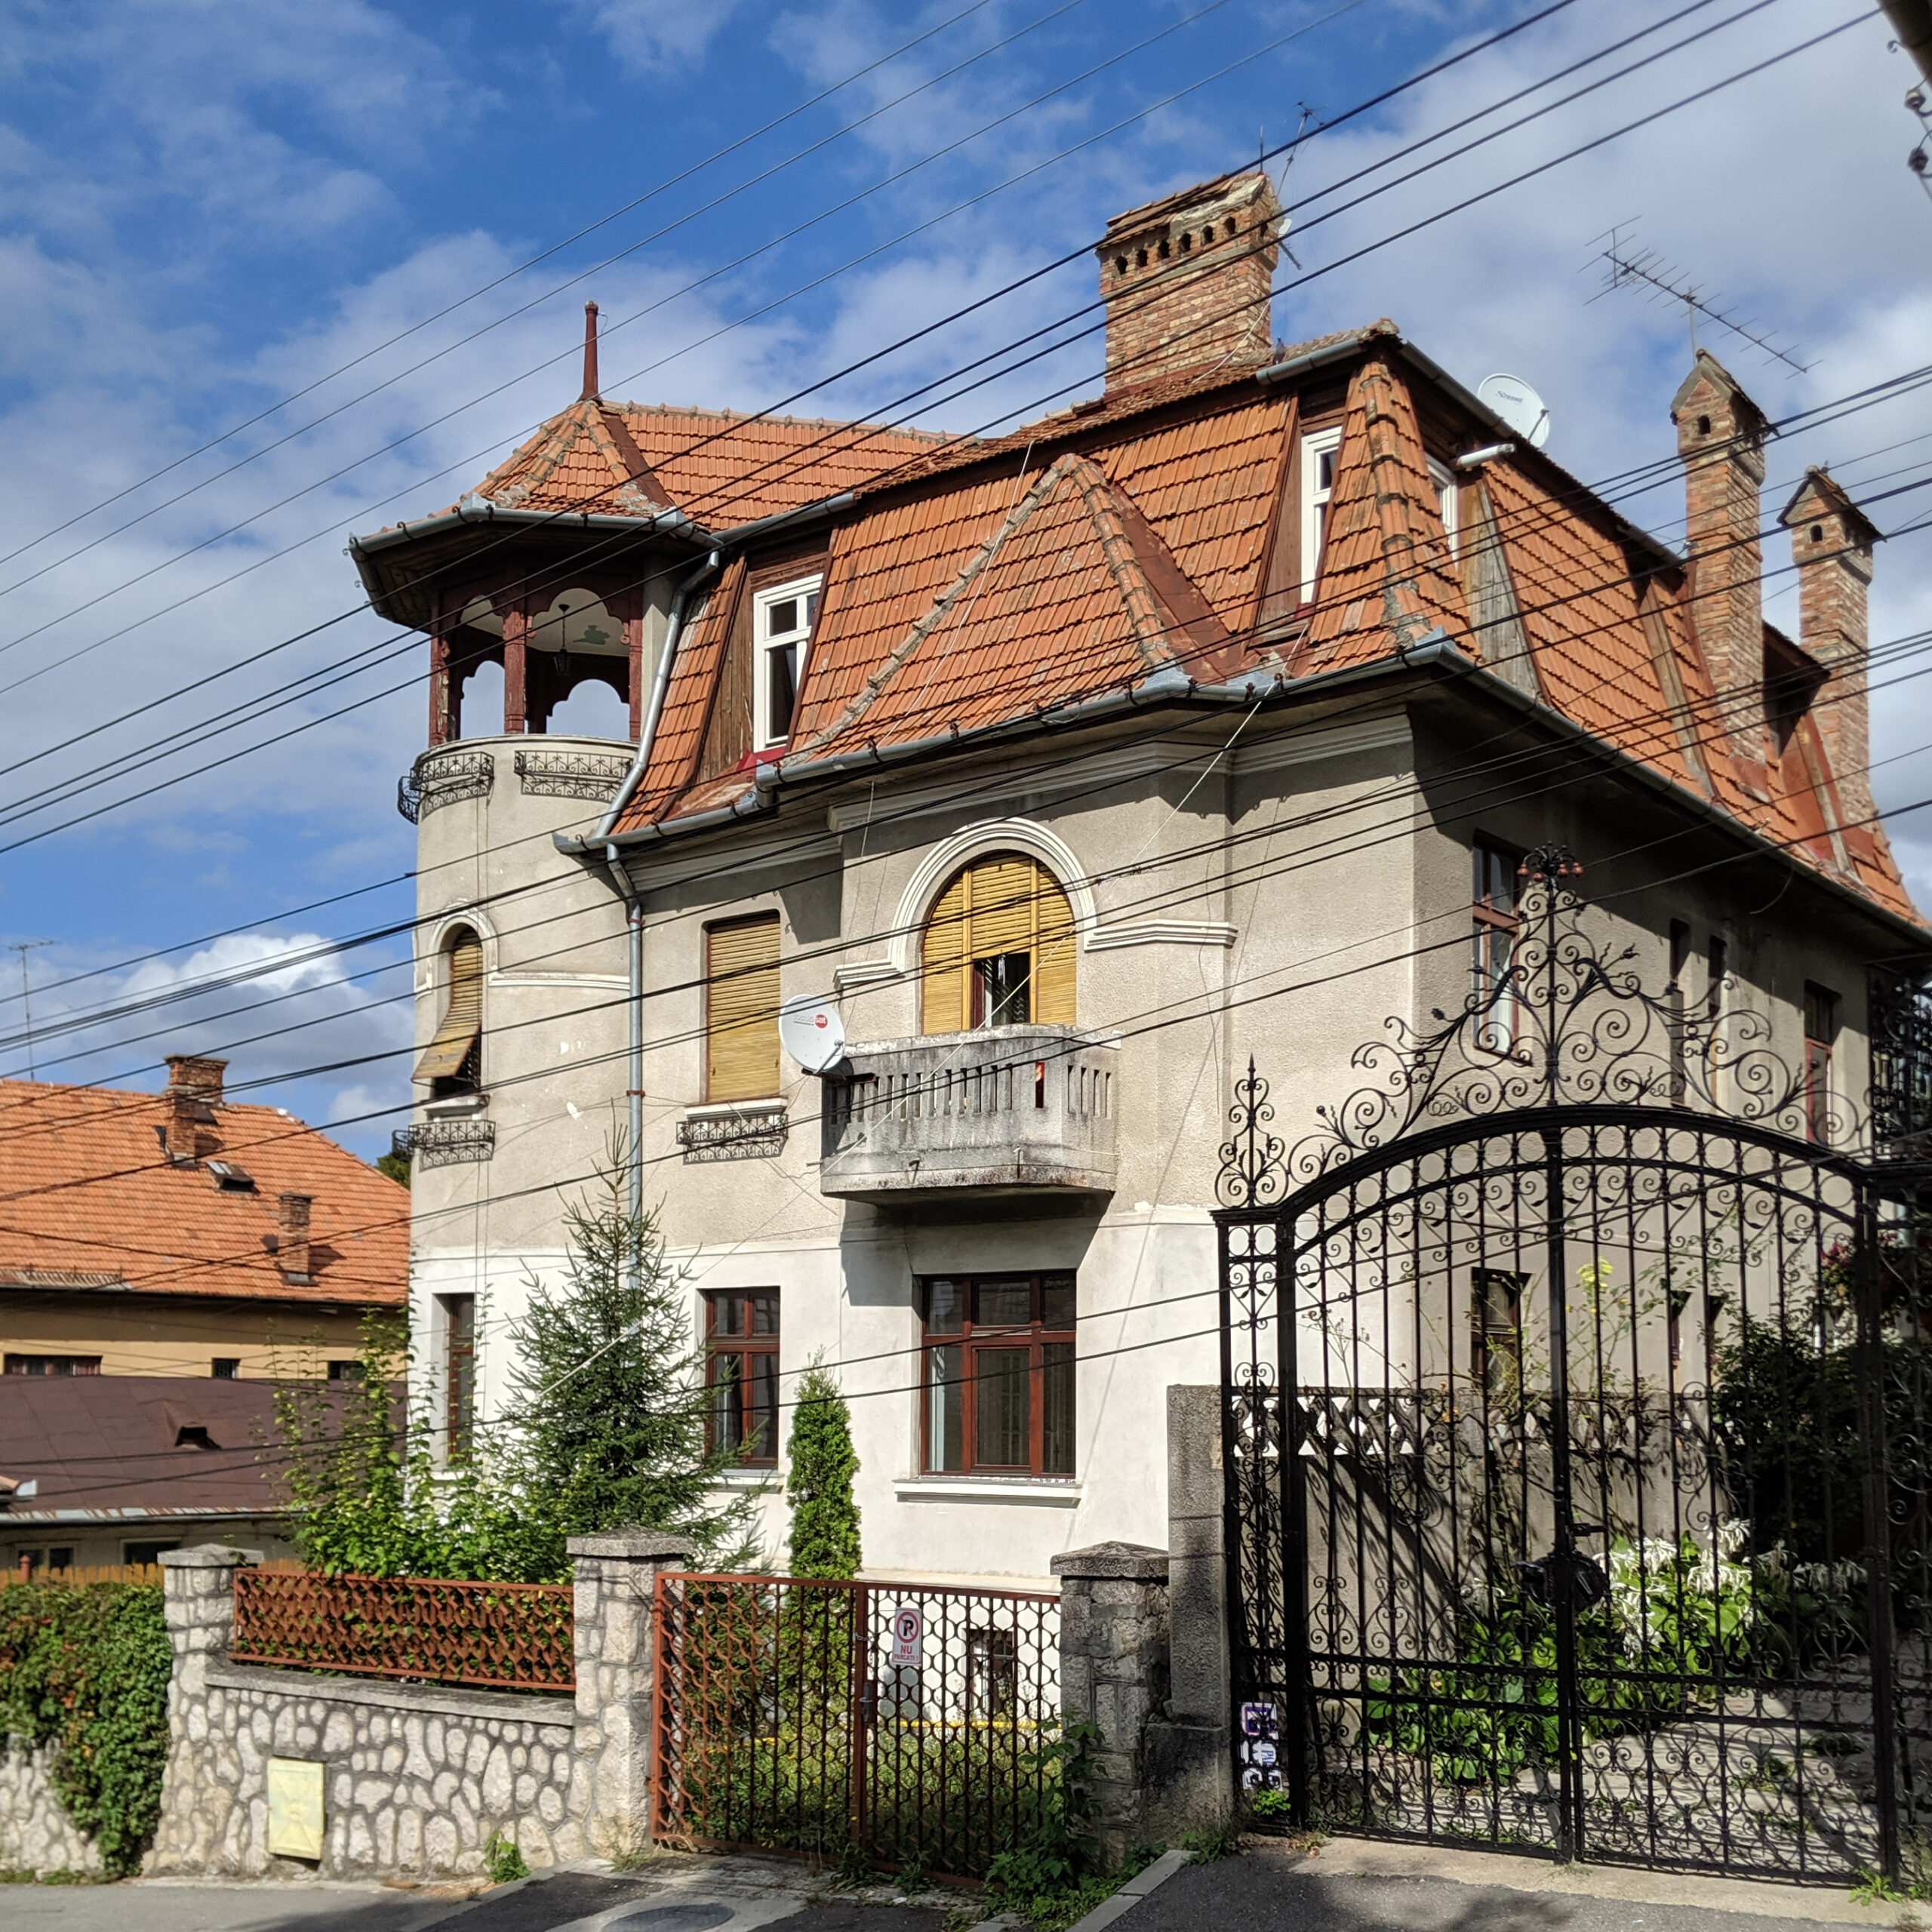 A historic home with balconies and gables in romania.